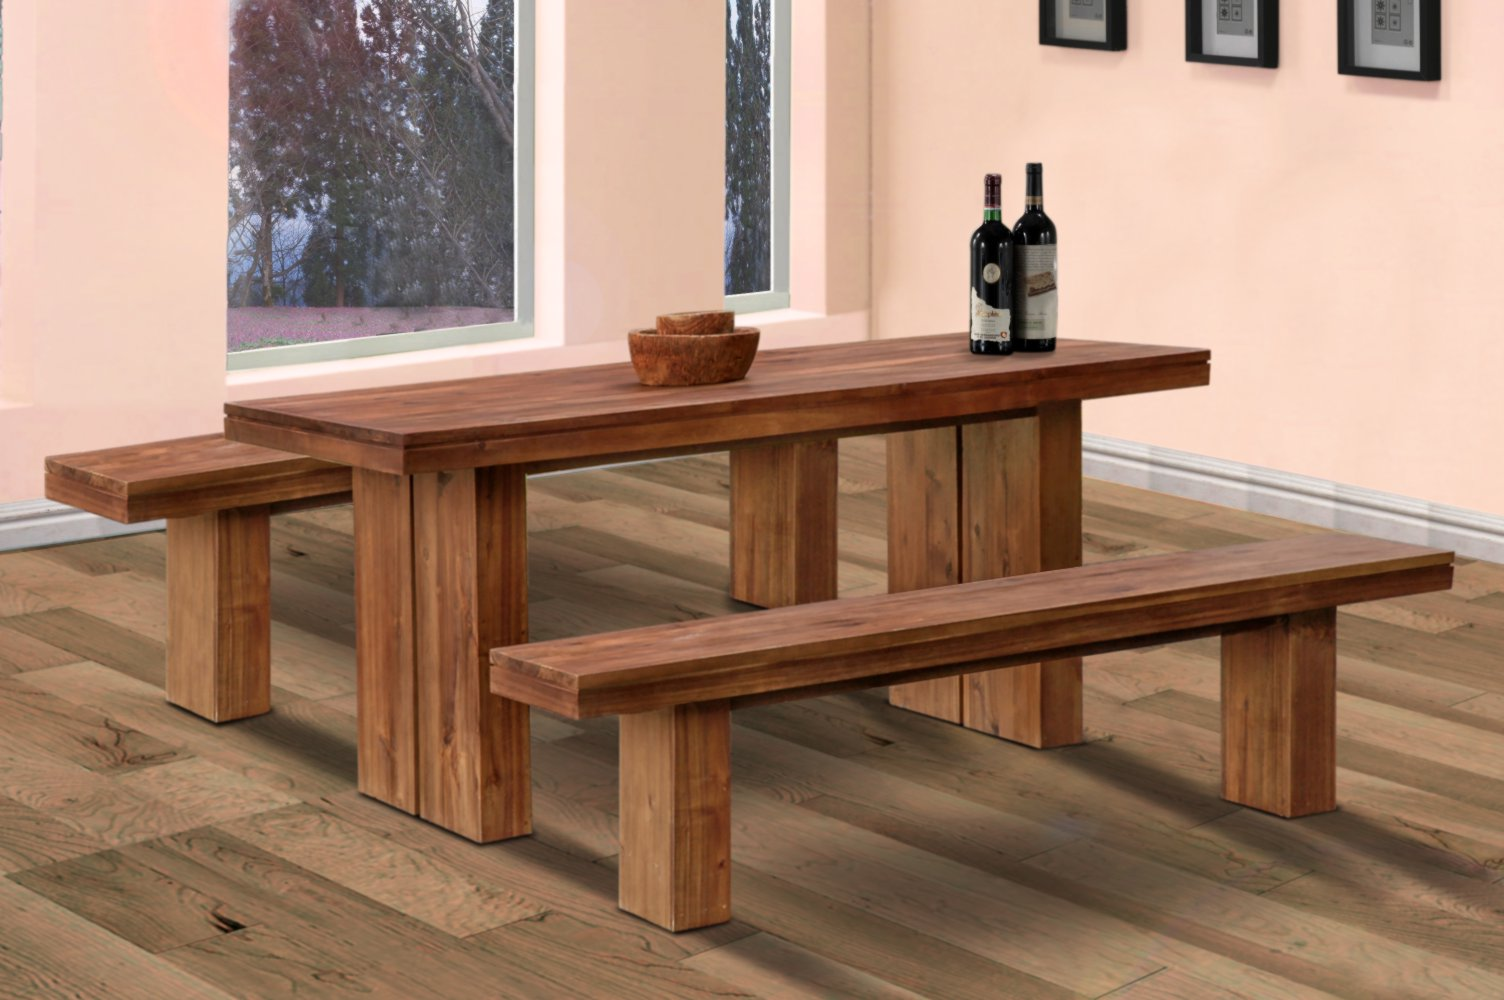 Danielle dining table and bench java valentti - Kitchen bench designs ...